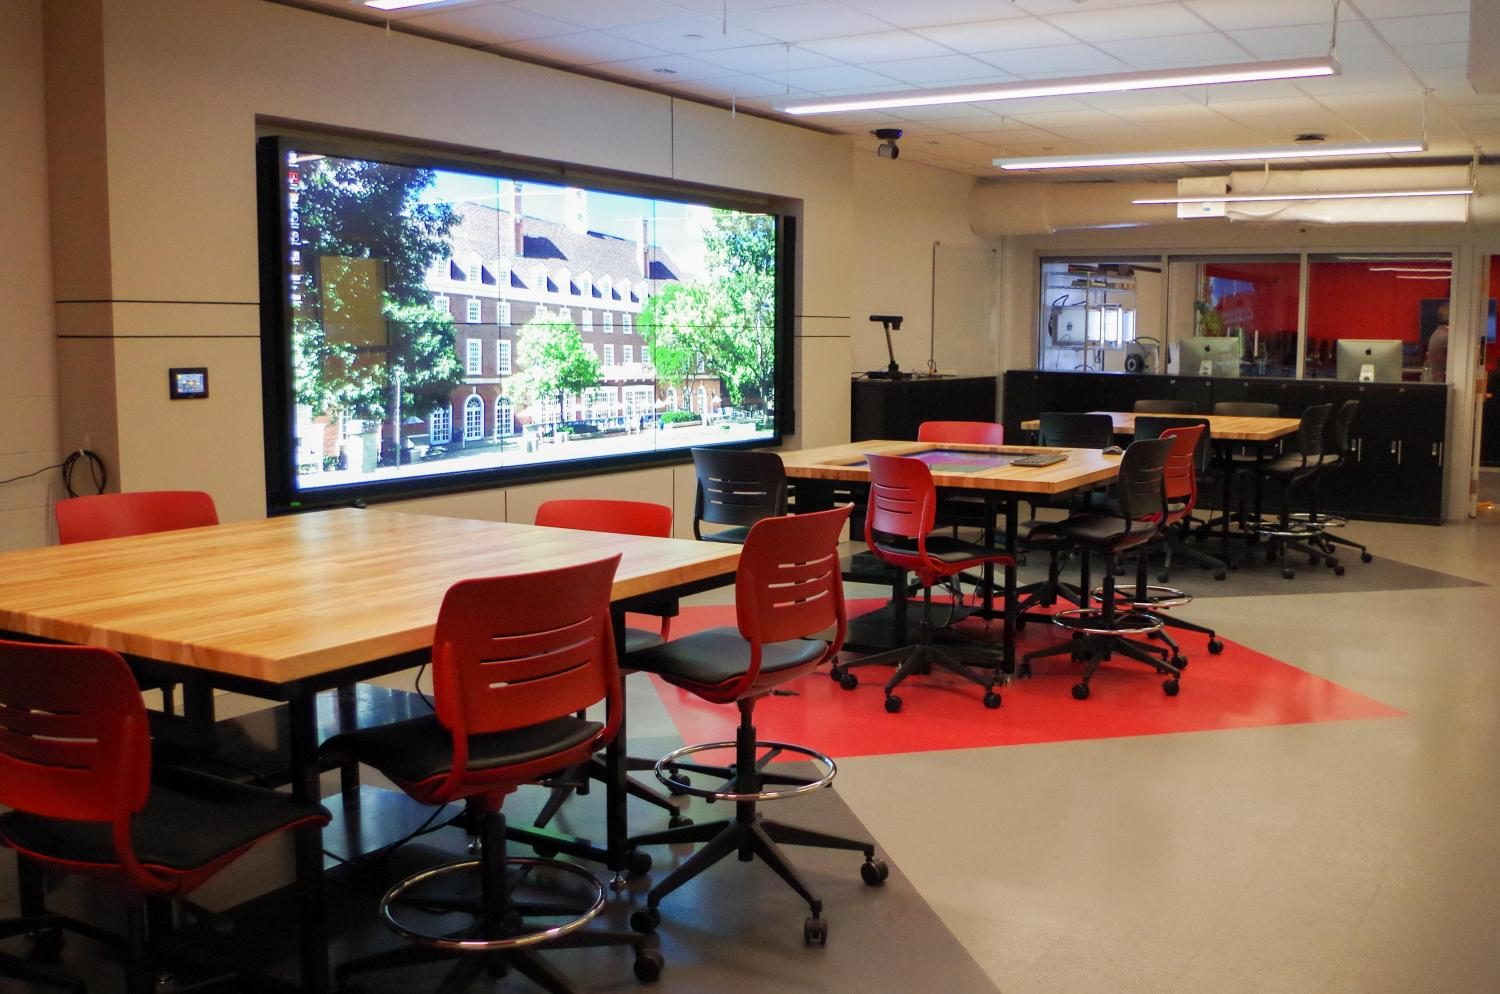 Room 172 in the Armory is one of the new innovation studios created and debuted this fall.